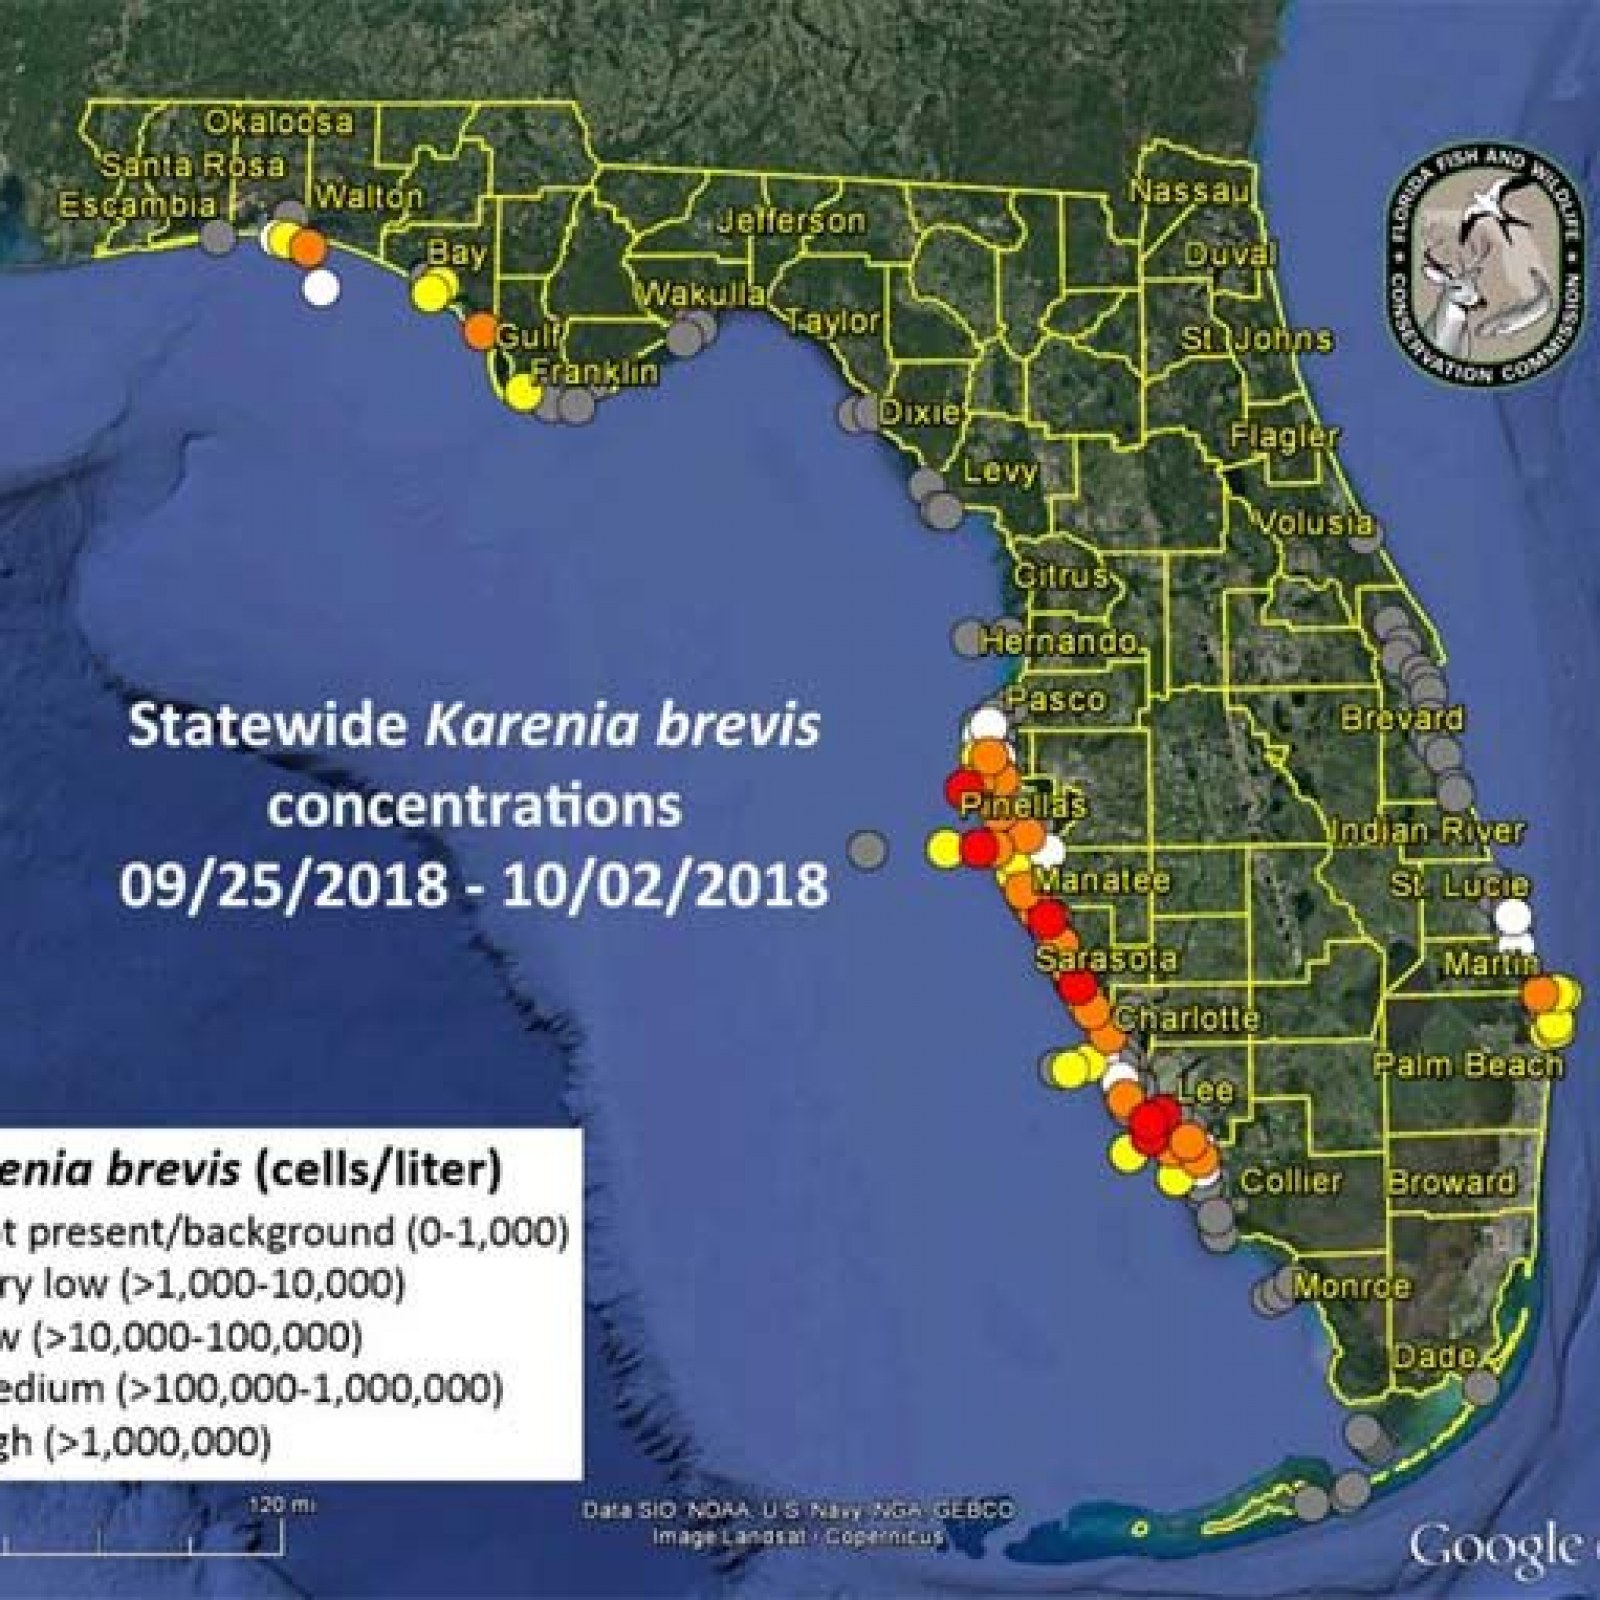 Toxic Algae In Florida Map 2018 Red Tide in Miami: Map of Florida Beaches Impacted by Toxic Algae